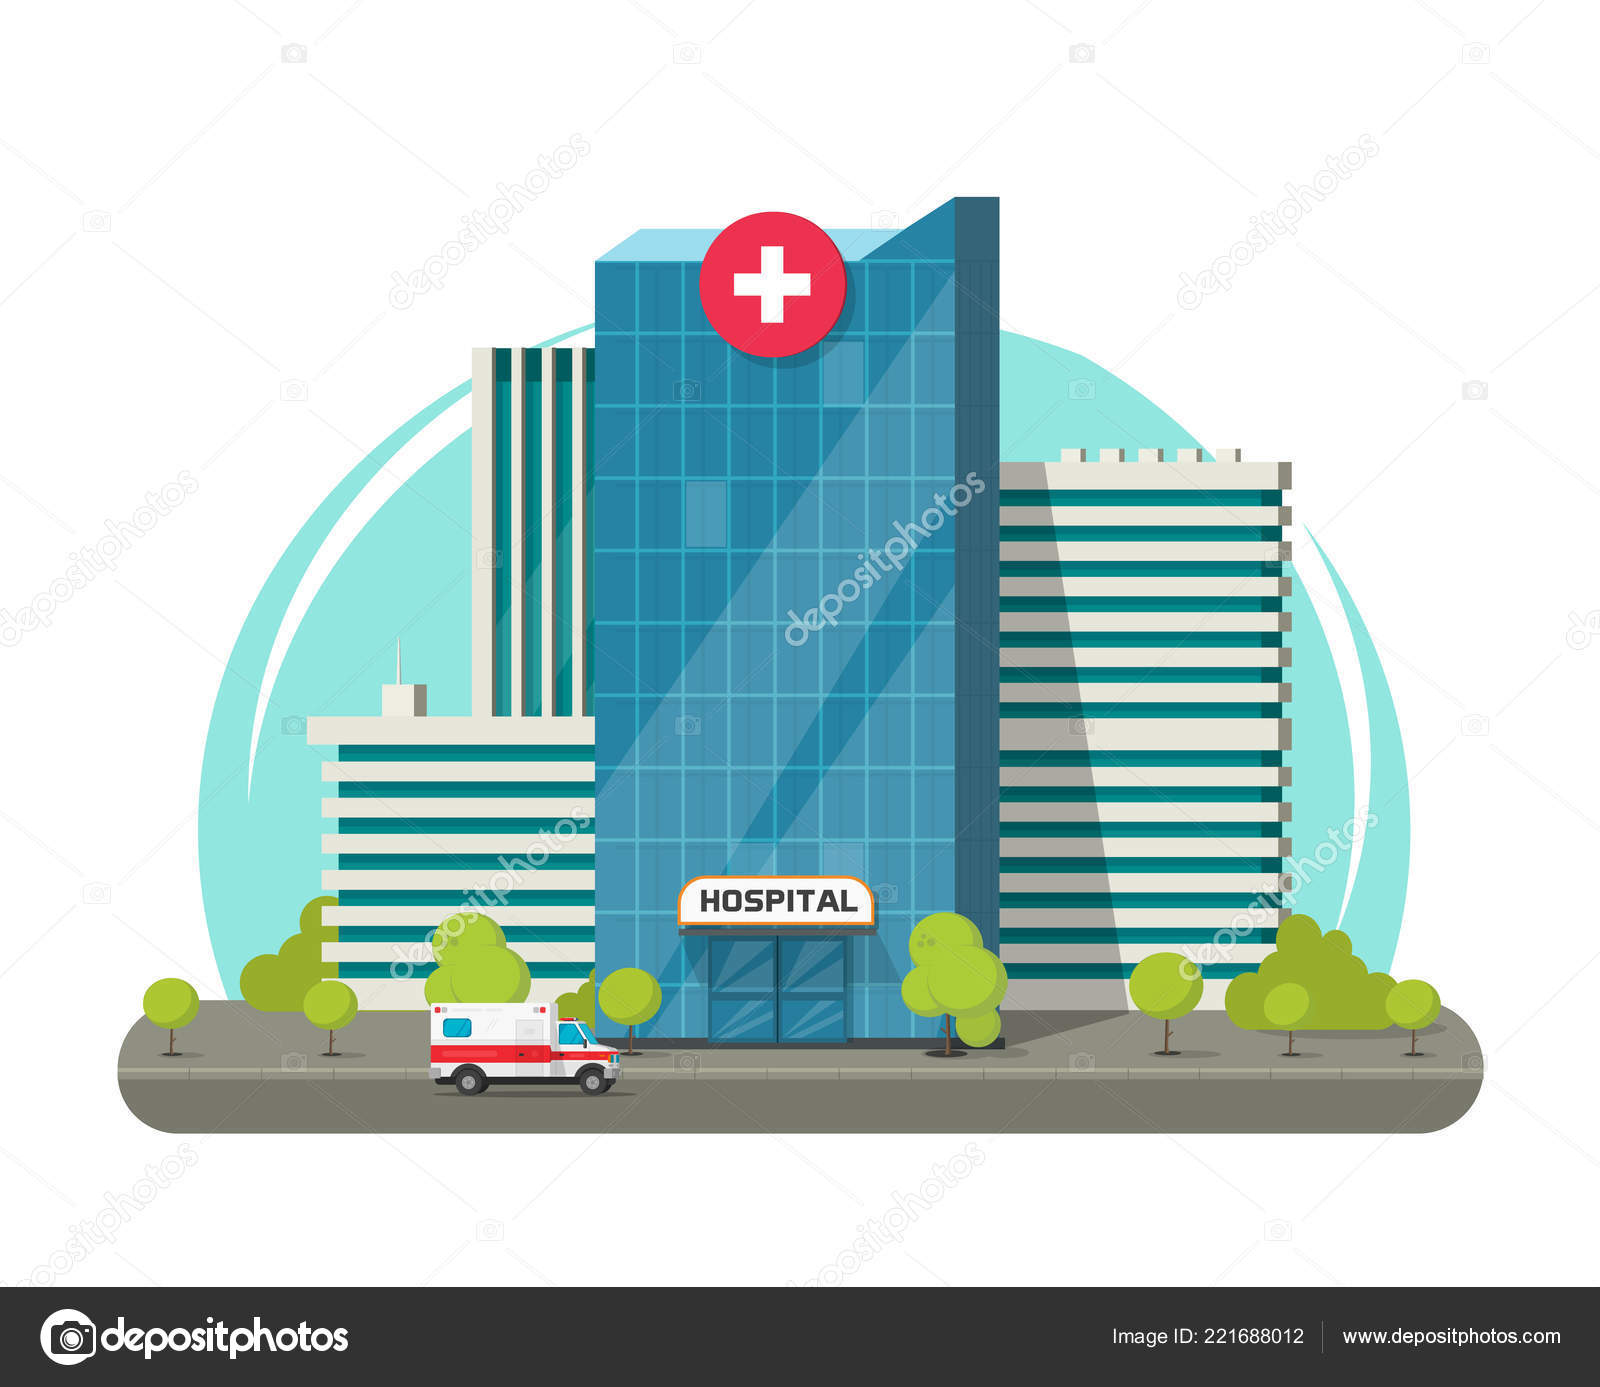 Hospital building isolated vector illustration, flat cartoon modern.